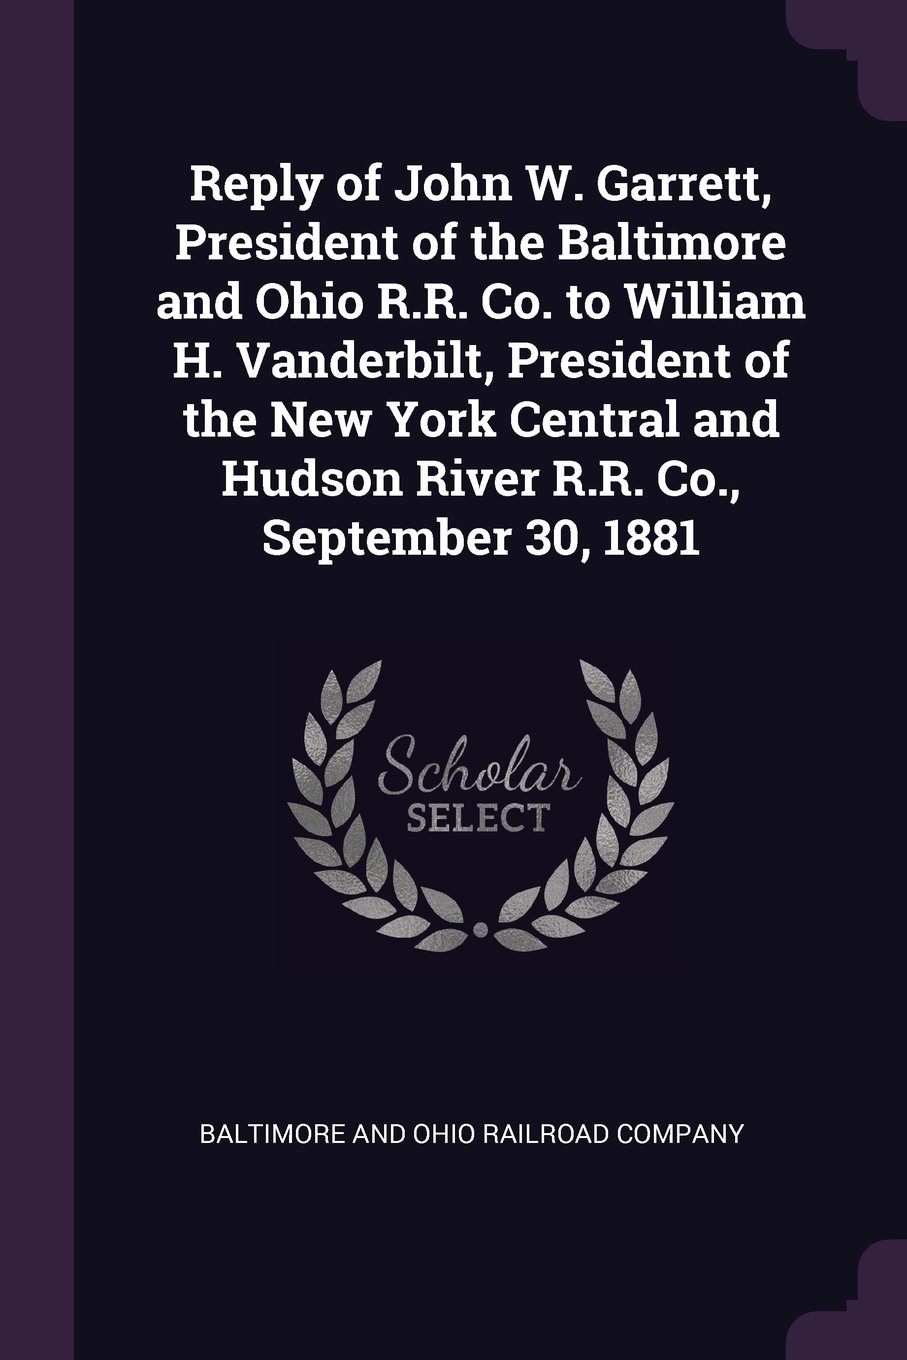 Read Online Reply of John W. Garrett, President of the Baltimore and Ohio R.R. Co. to William H. Vanderbilt, President of the New York Central and Hudson River R.R. Co., September 30, 1881 pdf